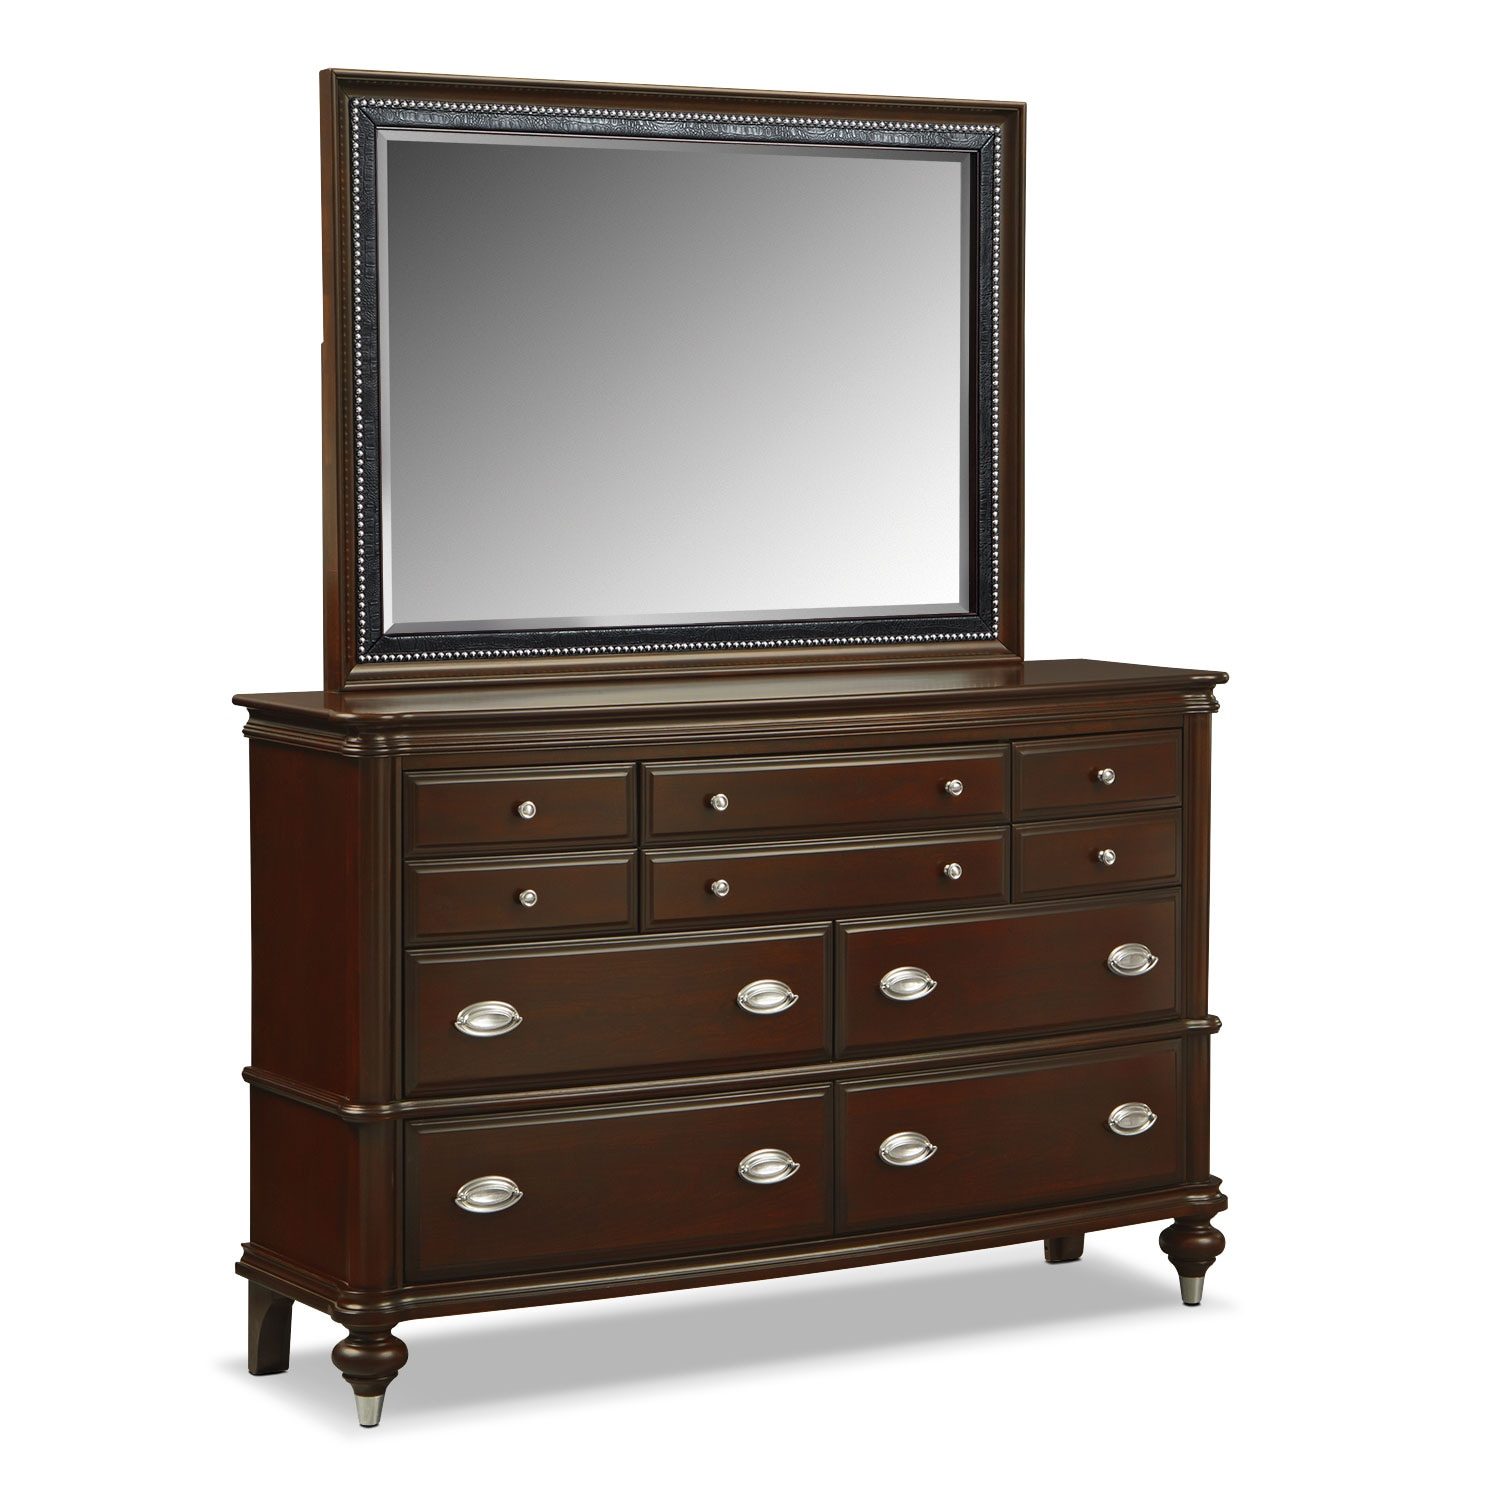 Bedroom Furniture - Esquire Dresser and Mirror - Merlot